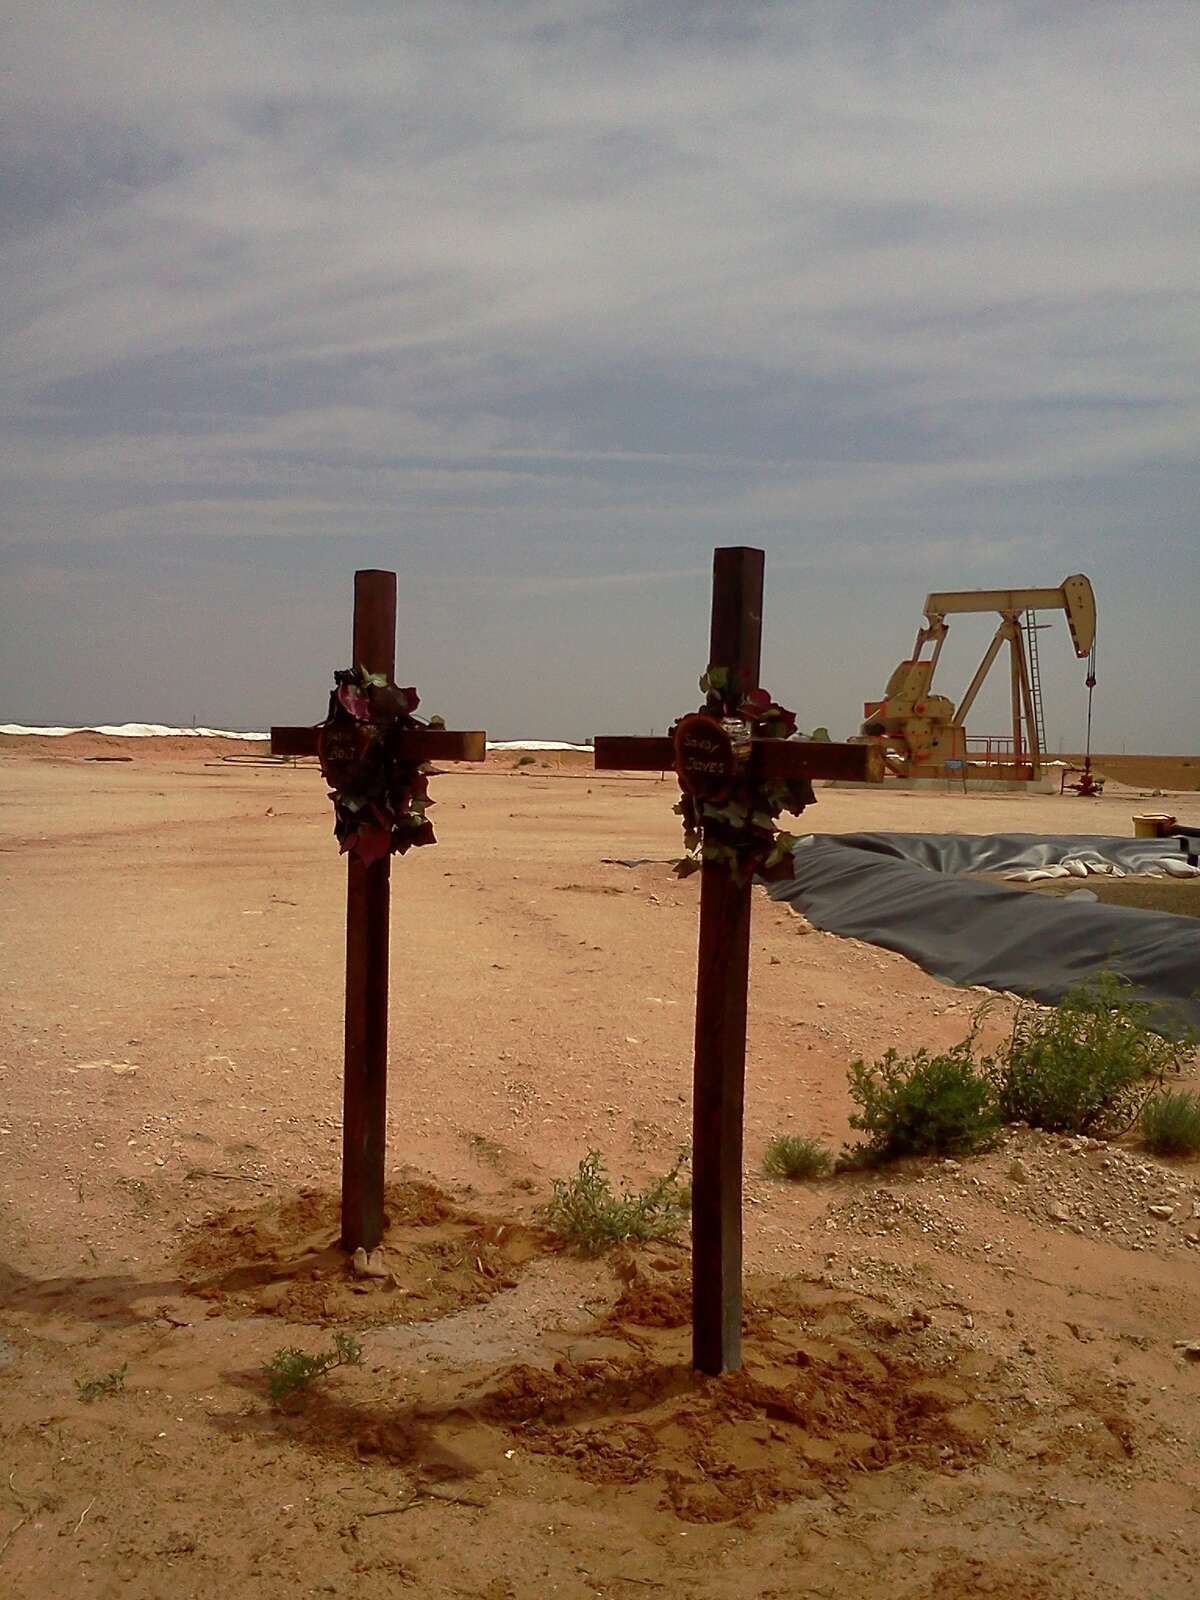 The crosses that Dennis Bolt erected at the oil well site where Bolt's son, Jason, was killed, along with the younger Bolt's friend Sandy Davis.